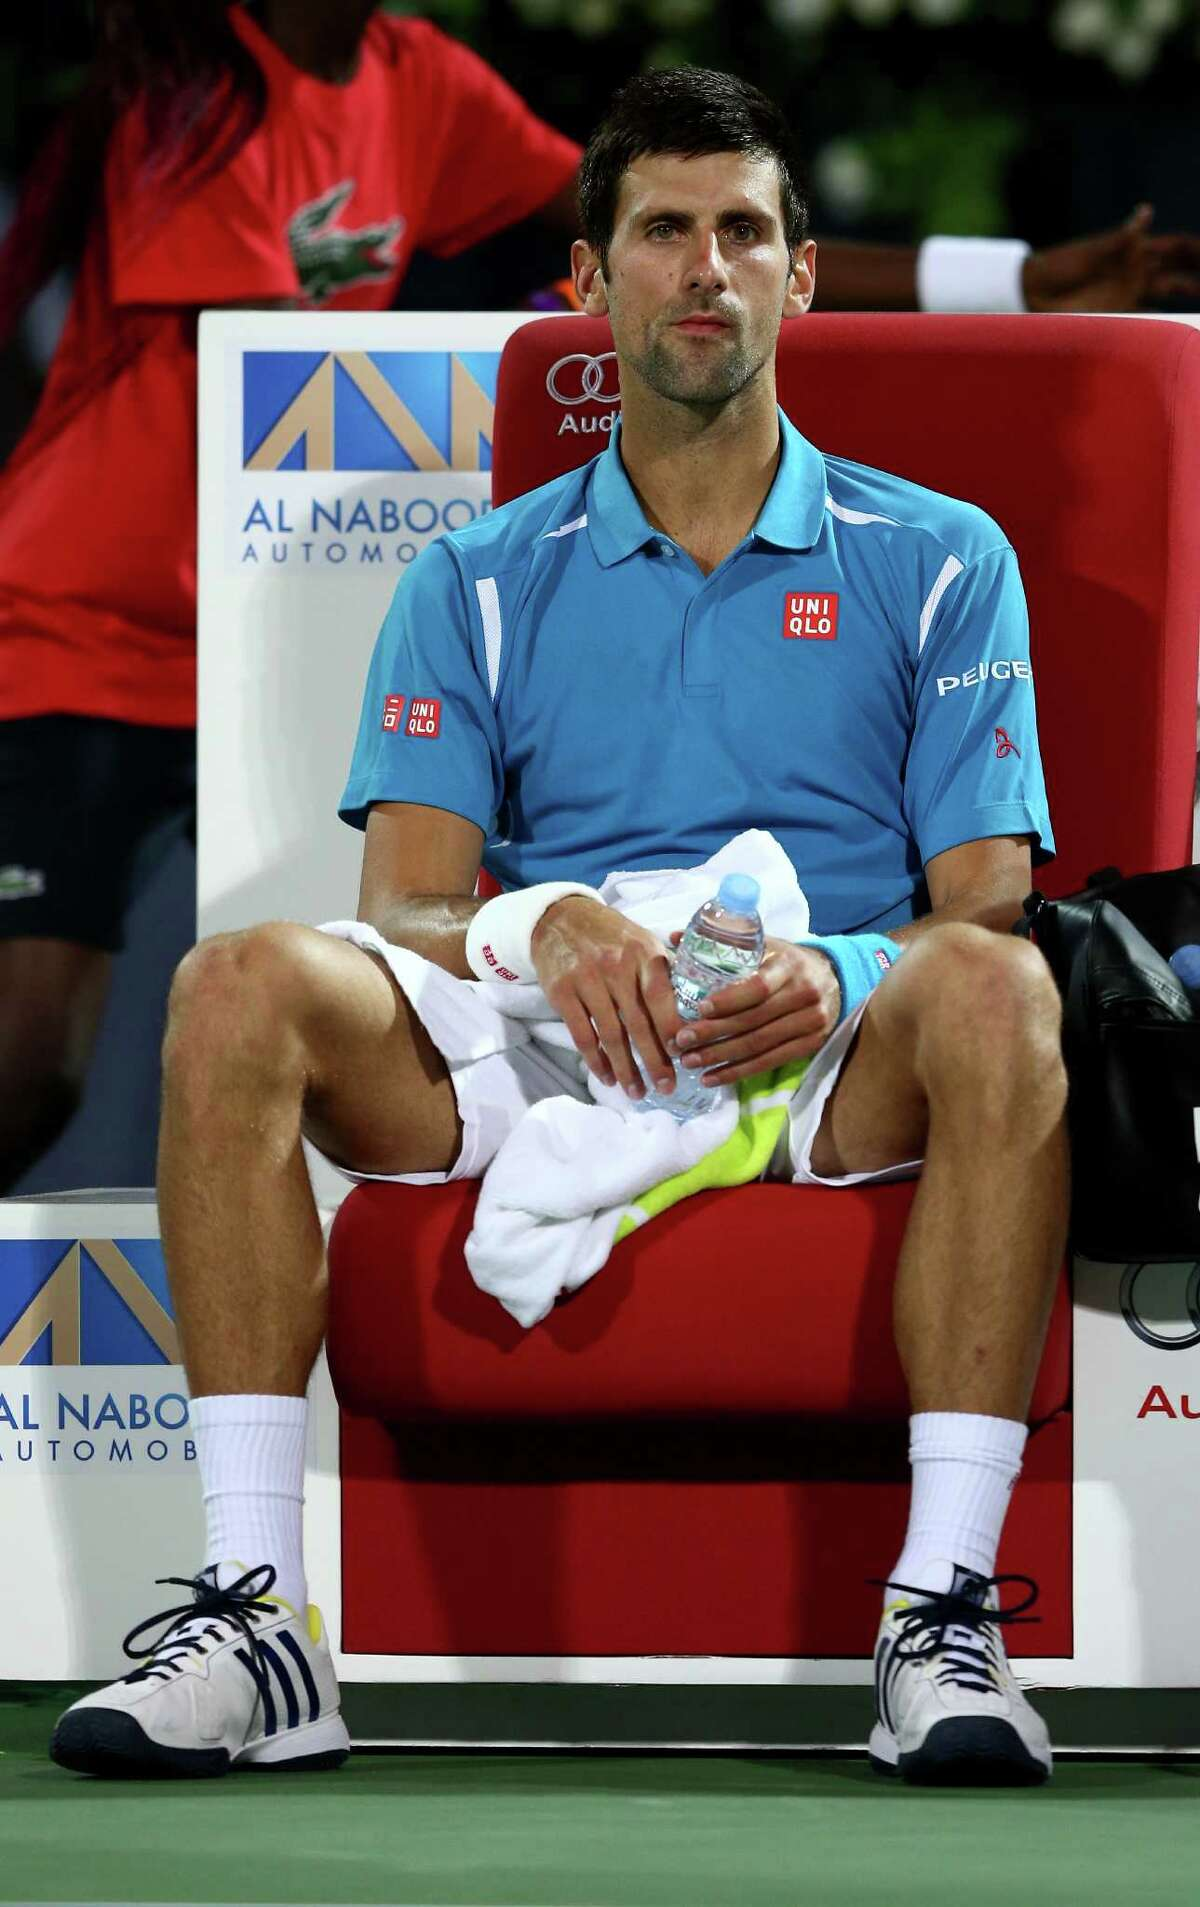 DUBAI, UNITED ARAB EMIRATES - FEBRUARY 25: Novak Djokovic of Serbia looks on in a break during his quarter final match against Feliciano Lopez of Spain on day six of the ATP Dubai Duty Free Tennis Championship at the Dubai Duty Free Stadium on February 25, 2016 in Dubai, United Arab Emirates. (Photo by Warren Little/Getty Images) ORG XMIT: 596688645